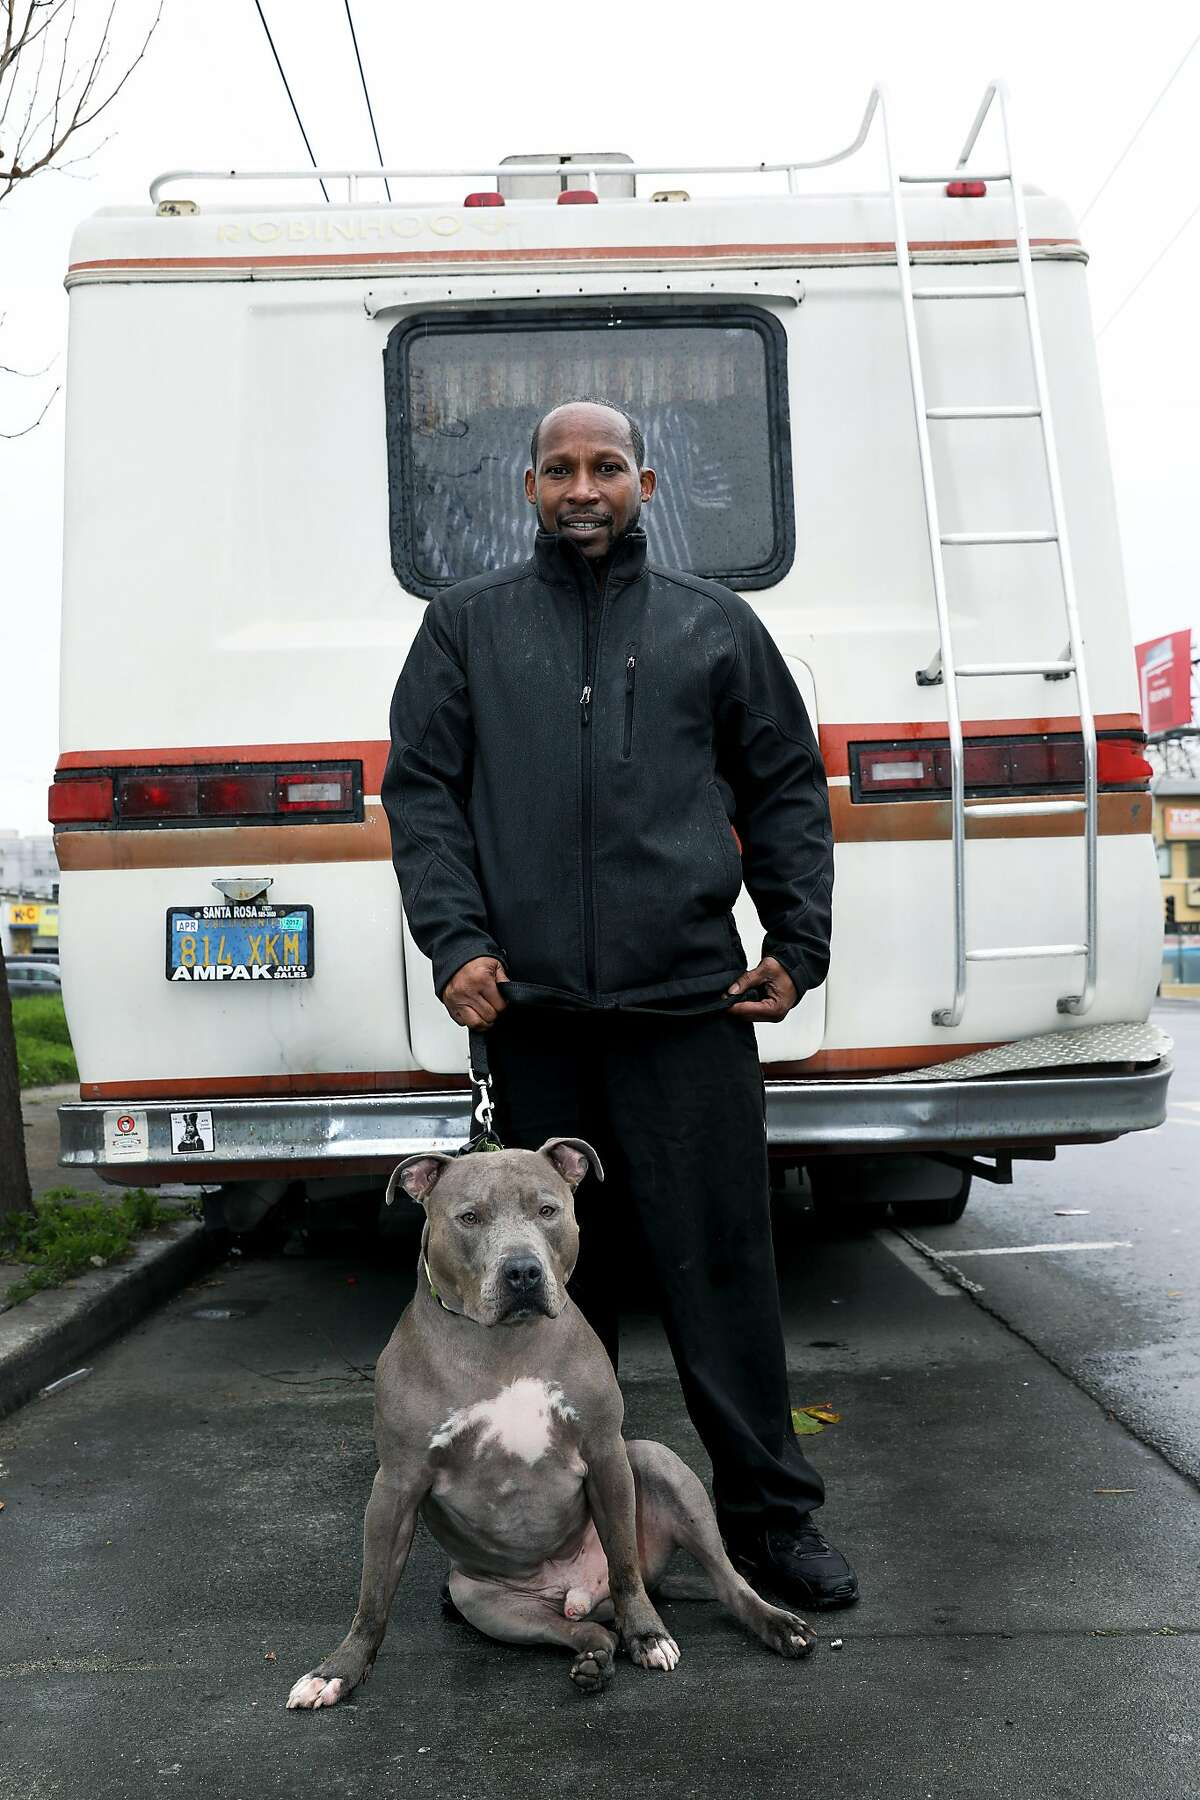 Ernest Owens, 54, stands with his dog Blue as they pose for a portrait near the corner of 5th and Harrison in San Francisco, Calif., on Friday, February 1, 2019. Owens and his wife, Lisa Owens (not pictured), live in their RV. City Supervisor Vallie Brown is proposing legislation designed to help people camping in their cars and RV campers.